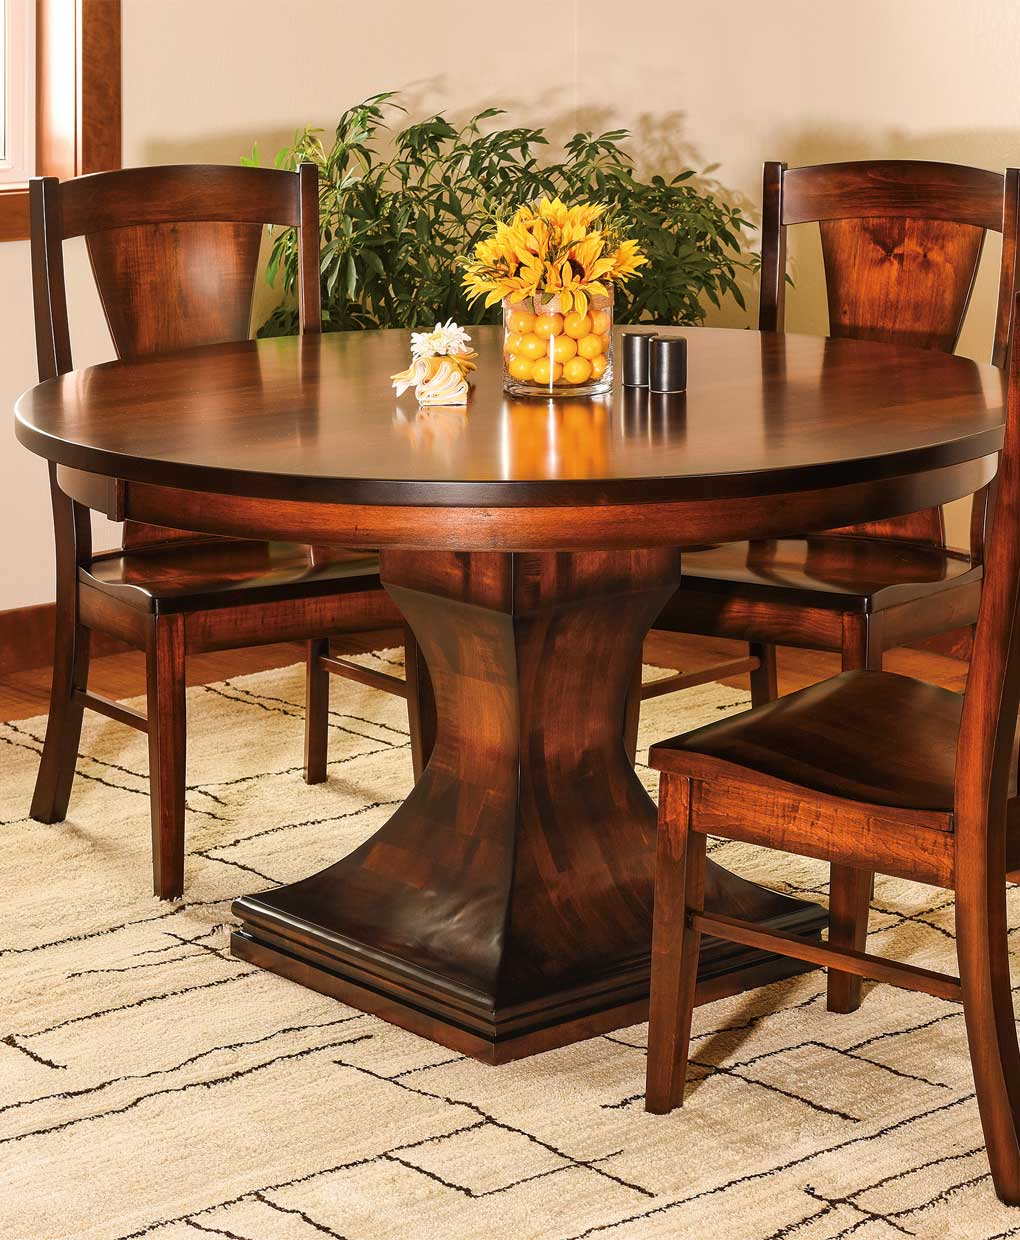 Dining Table Rollins Dining Table: Westin Single Pedestal Dining Table